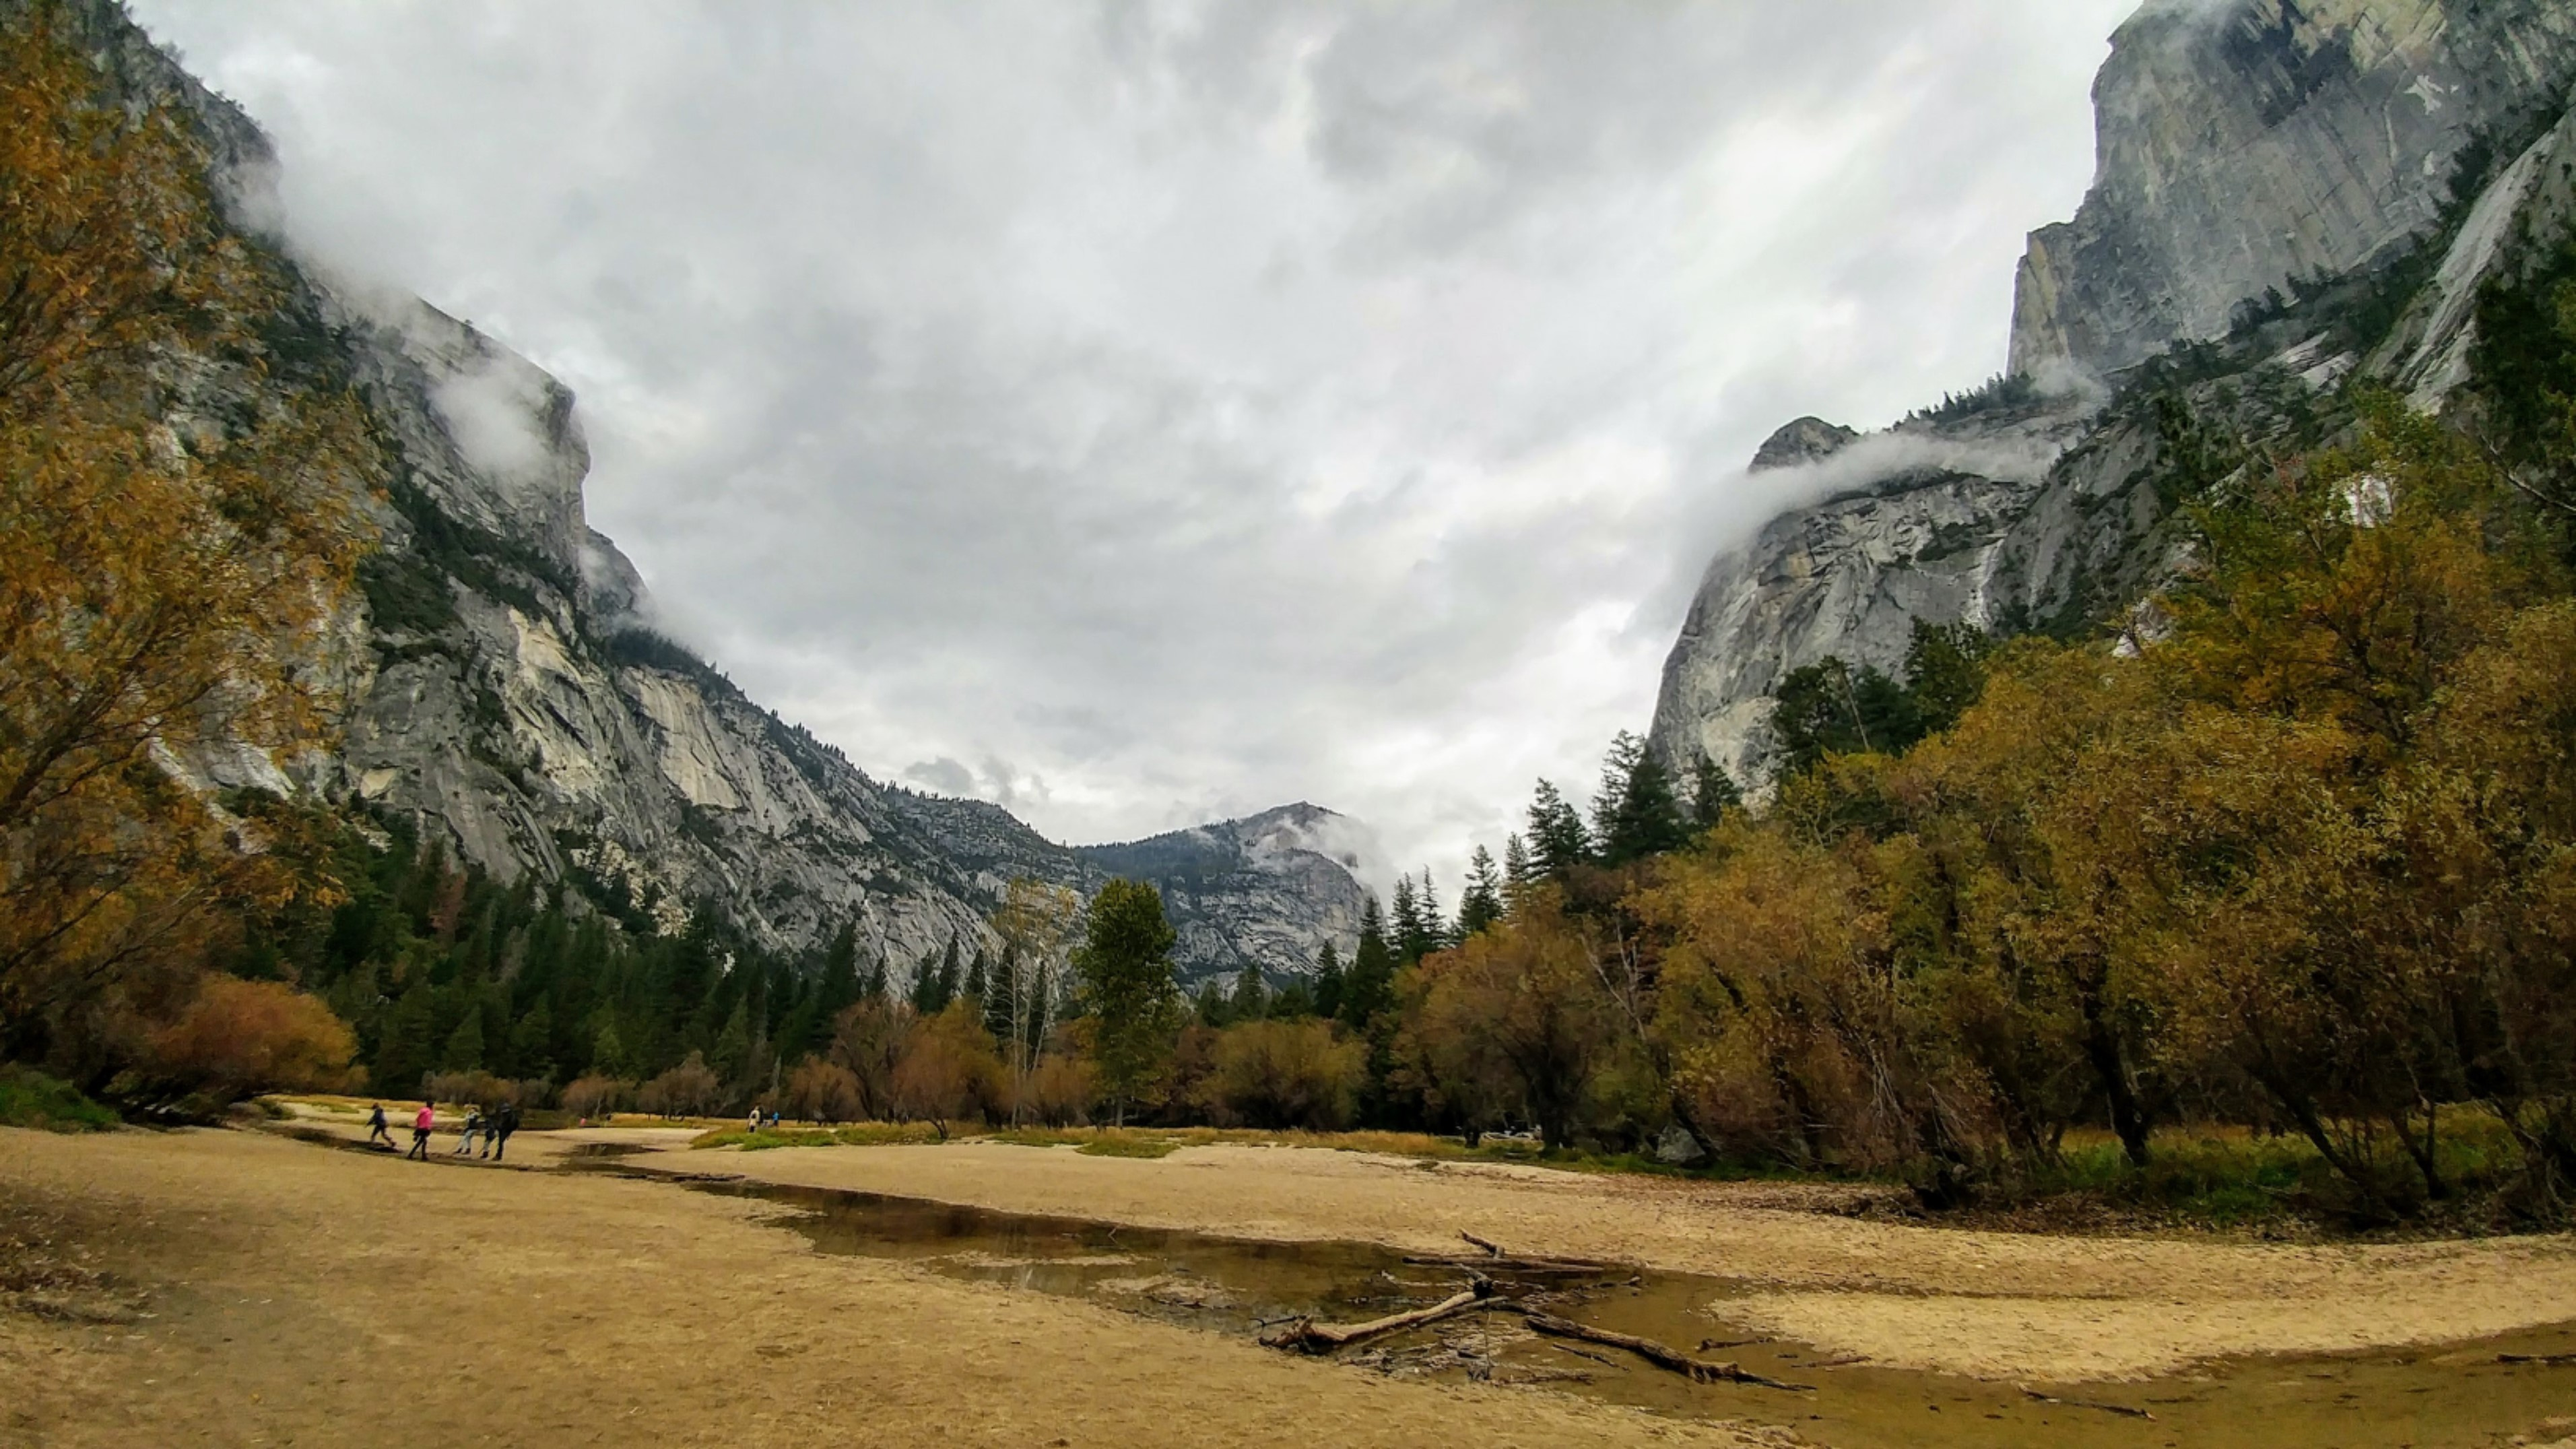 Yosemite National Park: One Day Itinerary with Photos